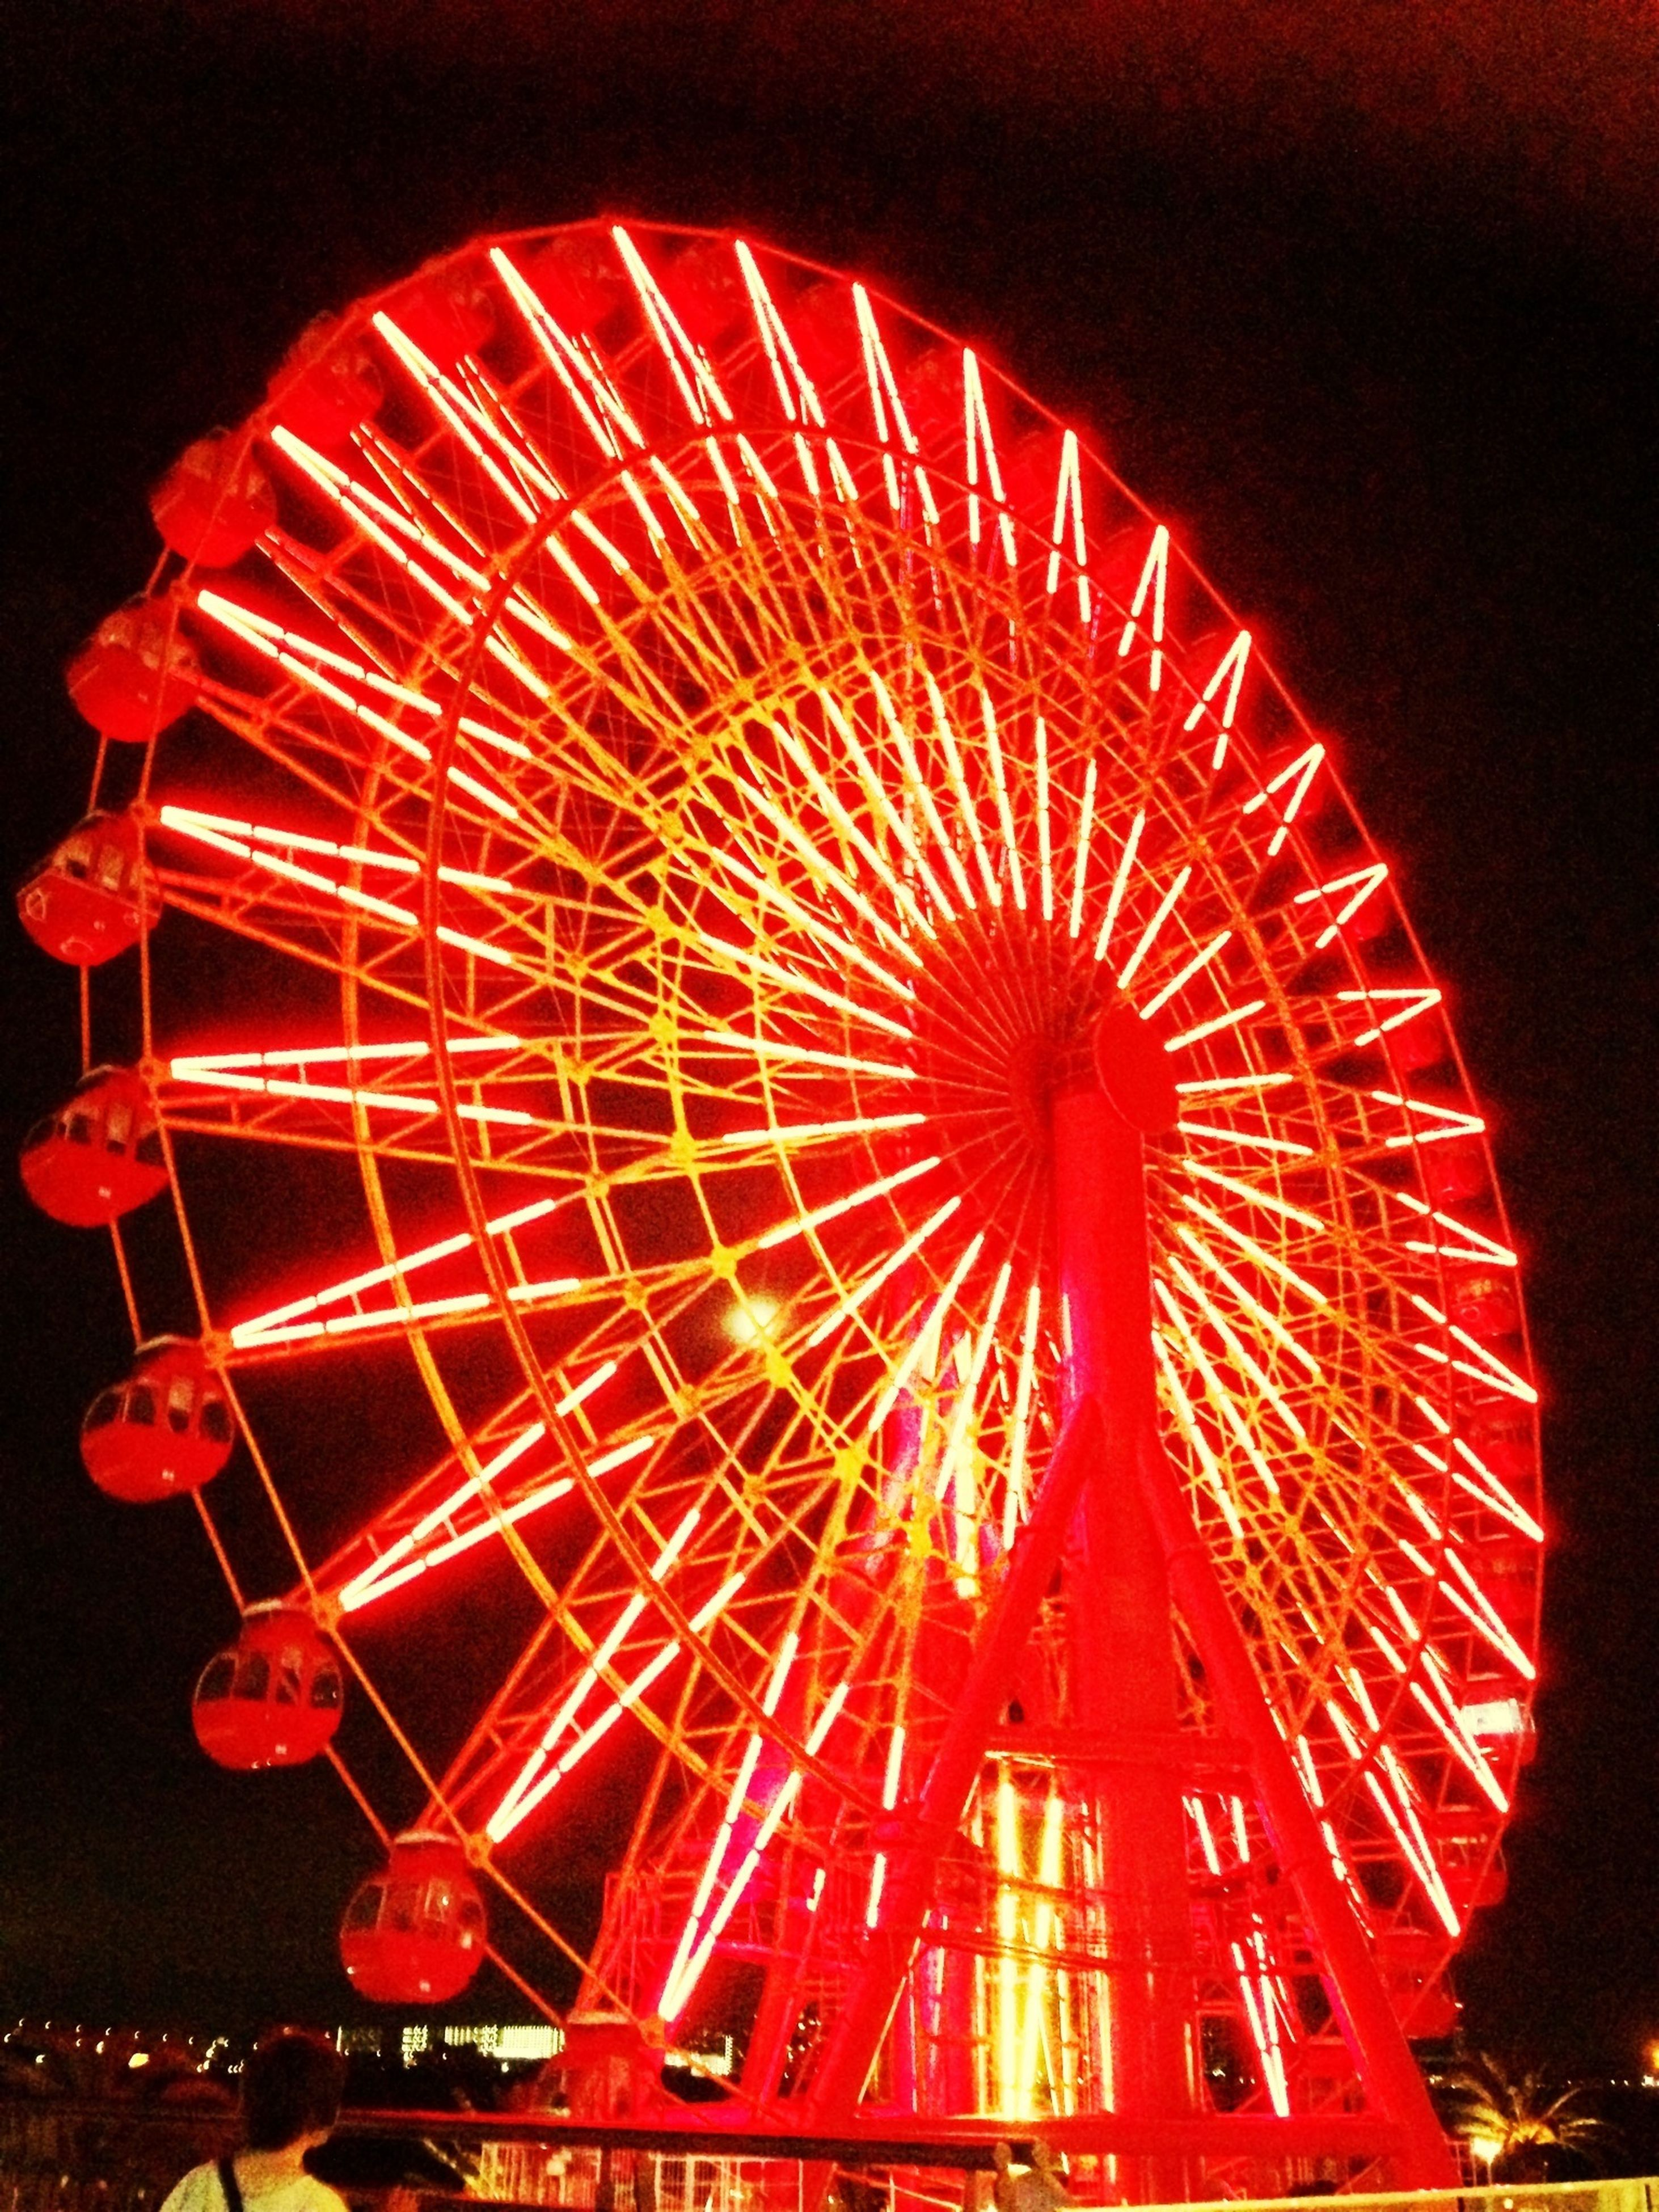 arts culture and entertainment, red, amusement park, amusement park ride, ferris wheel, illuminated, low angle view, night, circle, sky, celebration, fun, outdoors, clear sky, no people, cultures, tradition, big wheel, built structure, decoration